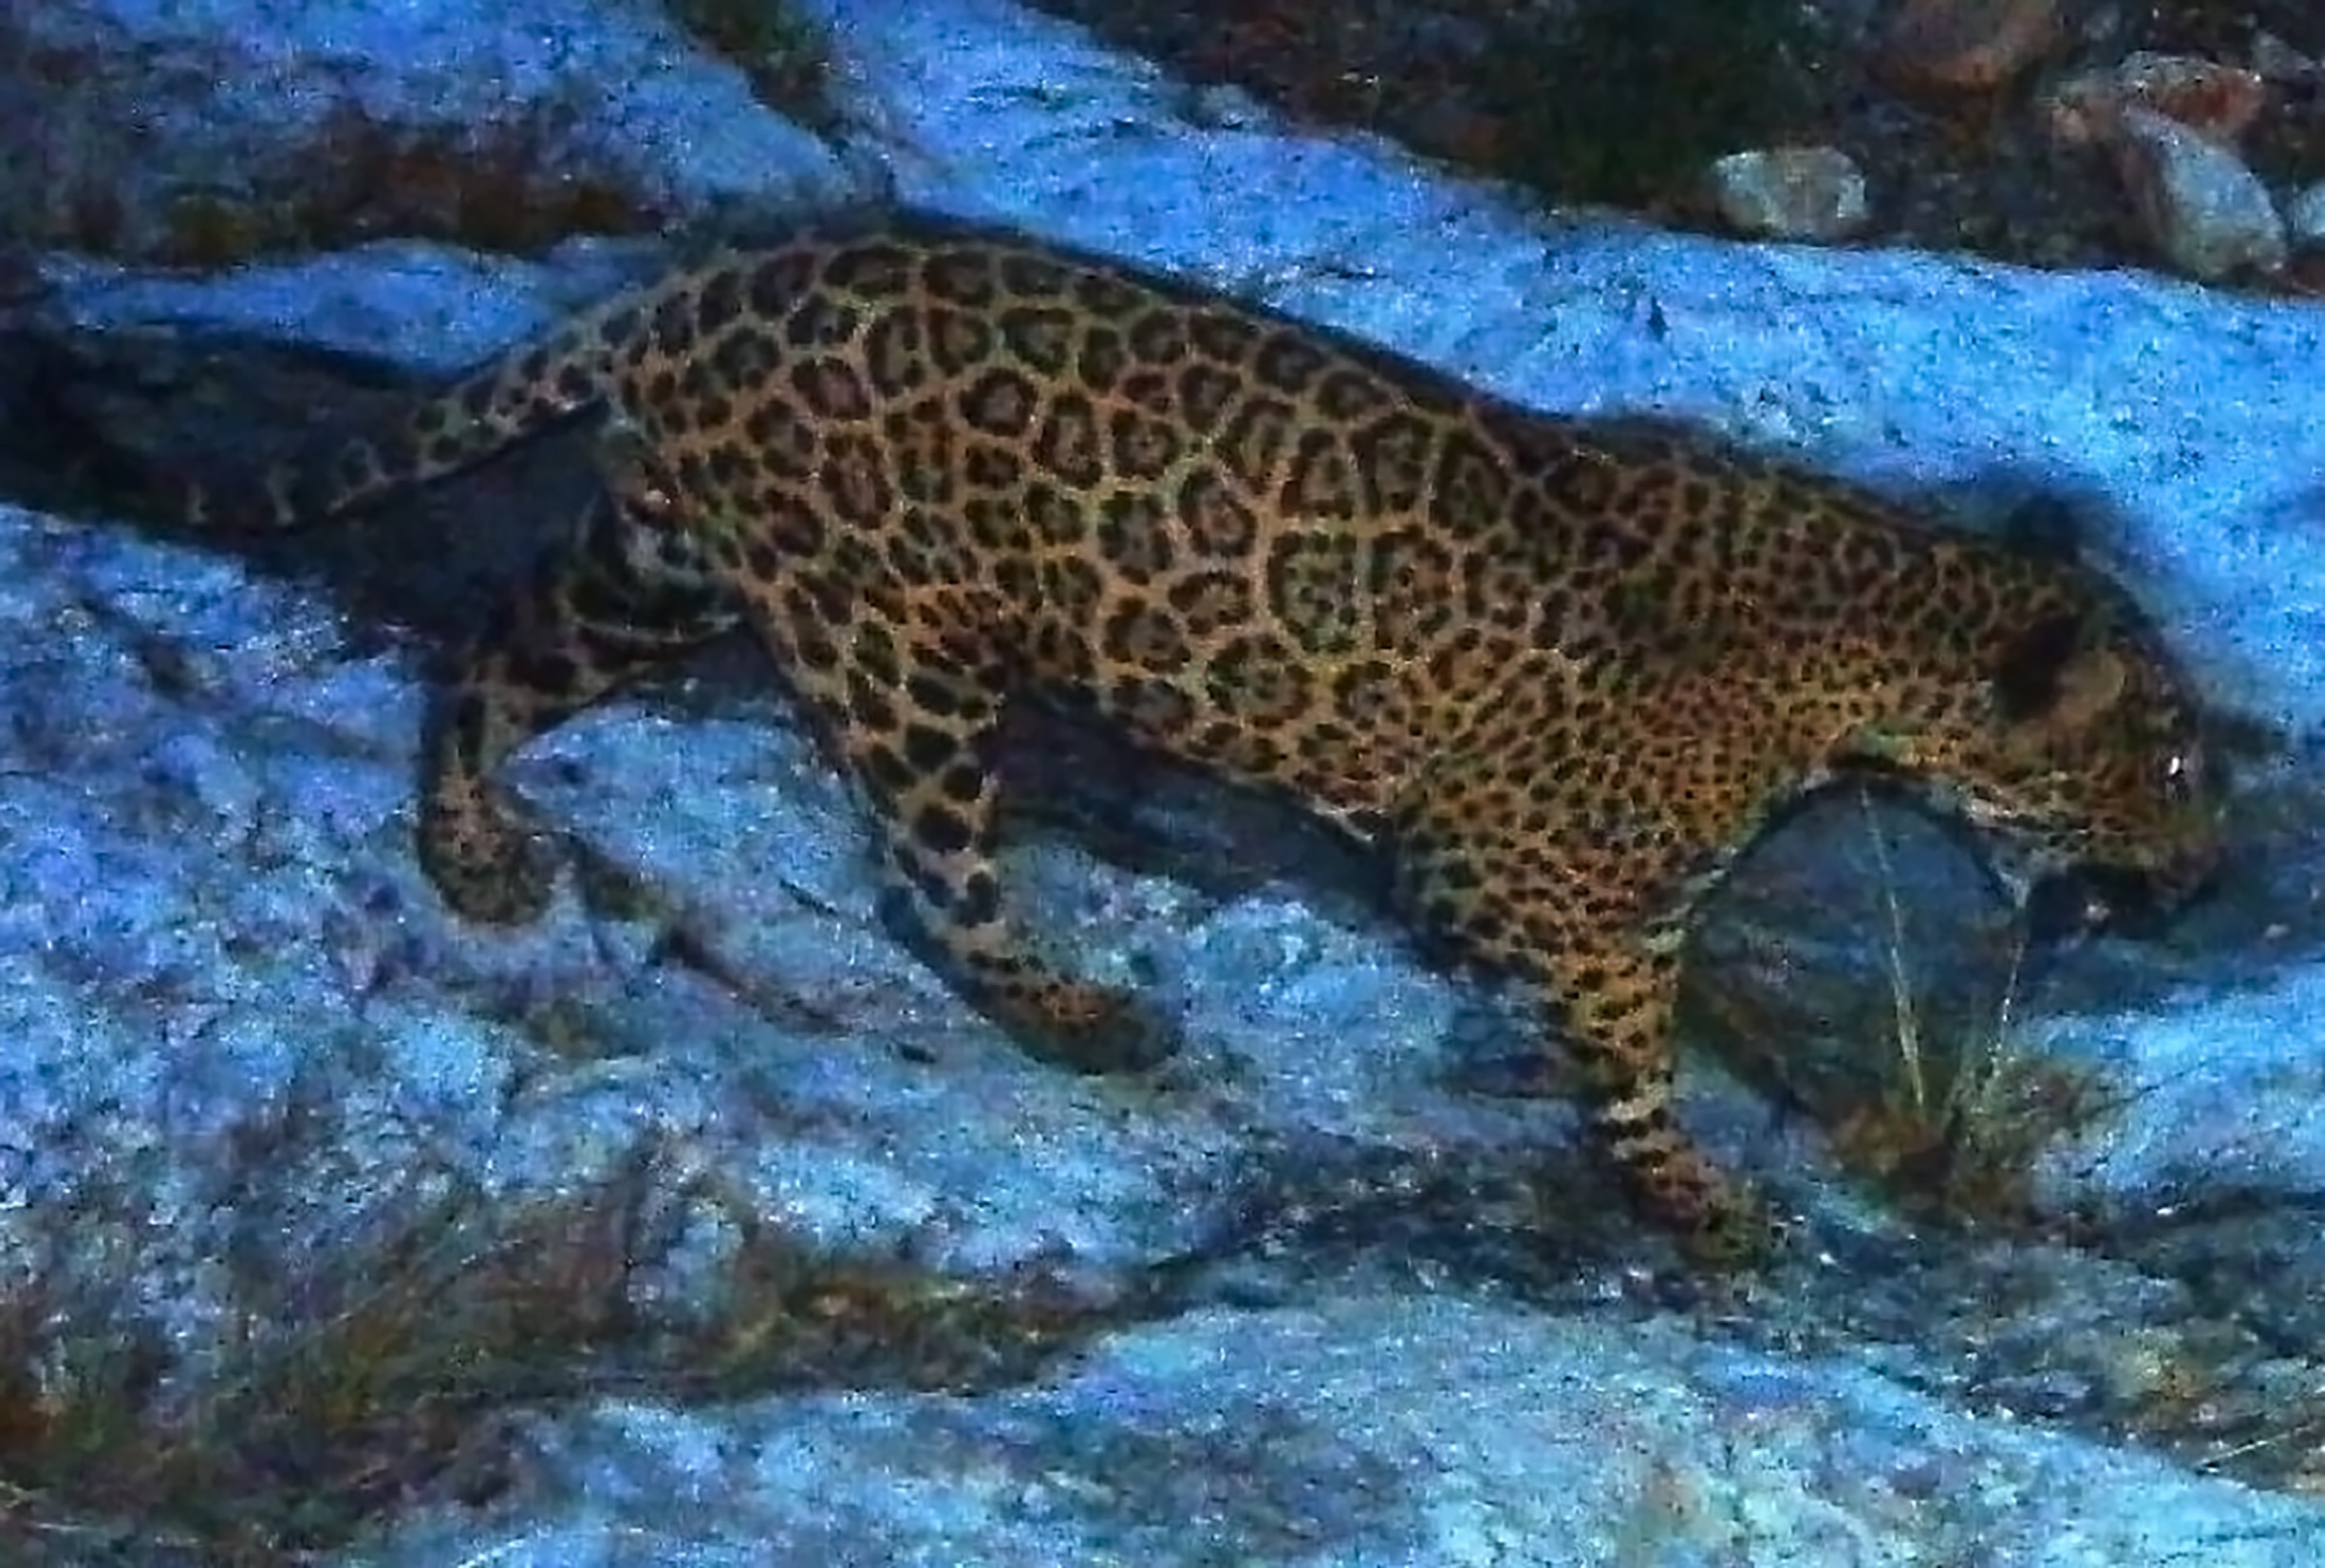 This male jaguar was photographed by a camera trap in the Santa Rita Mountains near Tucson, Arizona in April 2014, as part of a U.S. Fish and Wildlife Service/Department of Homeland Security-funded jaguar survey conducted by University of Arizona. This particular individual has been photographed repeatedly in the Santa Rita Mountains. Photograph courtesy of University of Arizona and the U.S. Fish & Wildlife Service